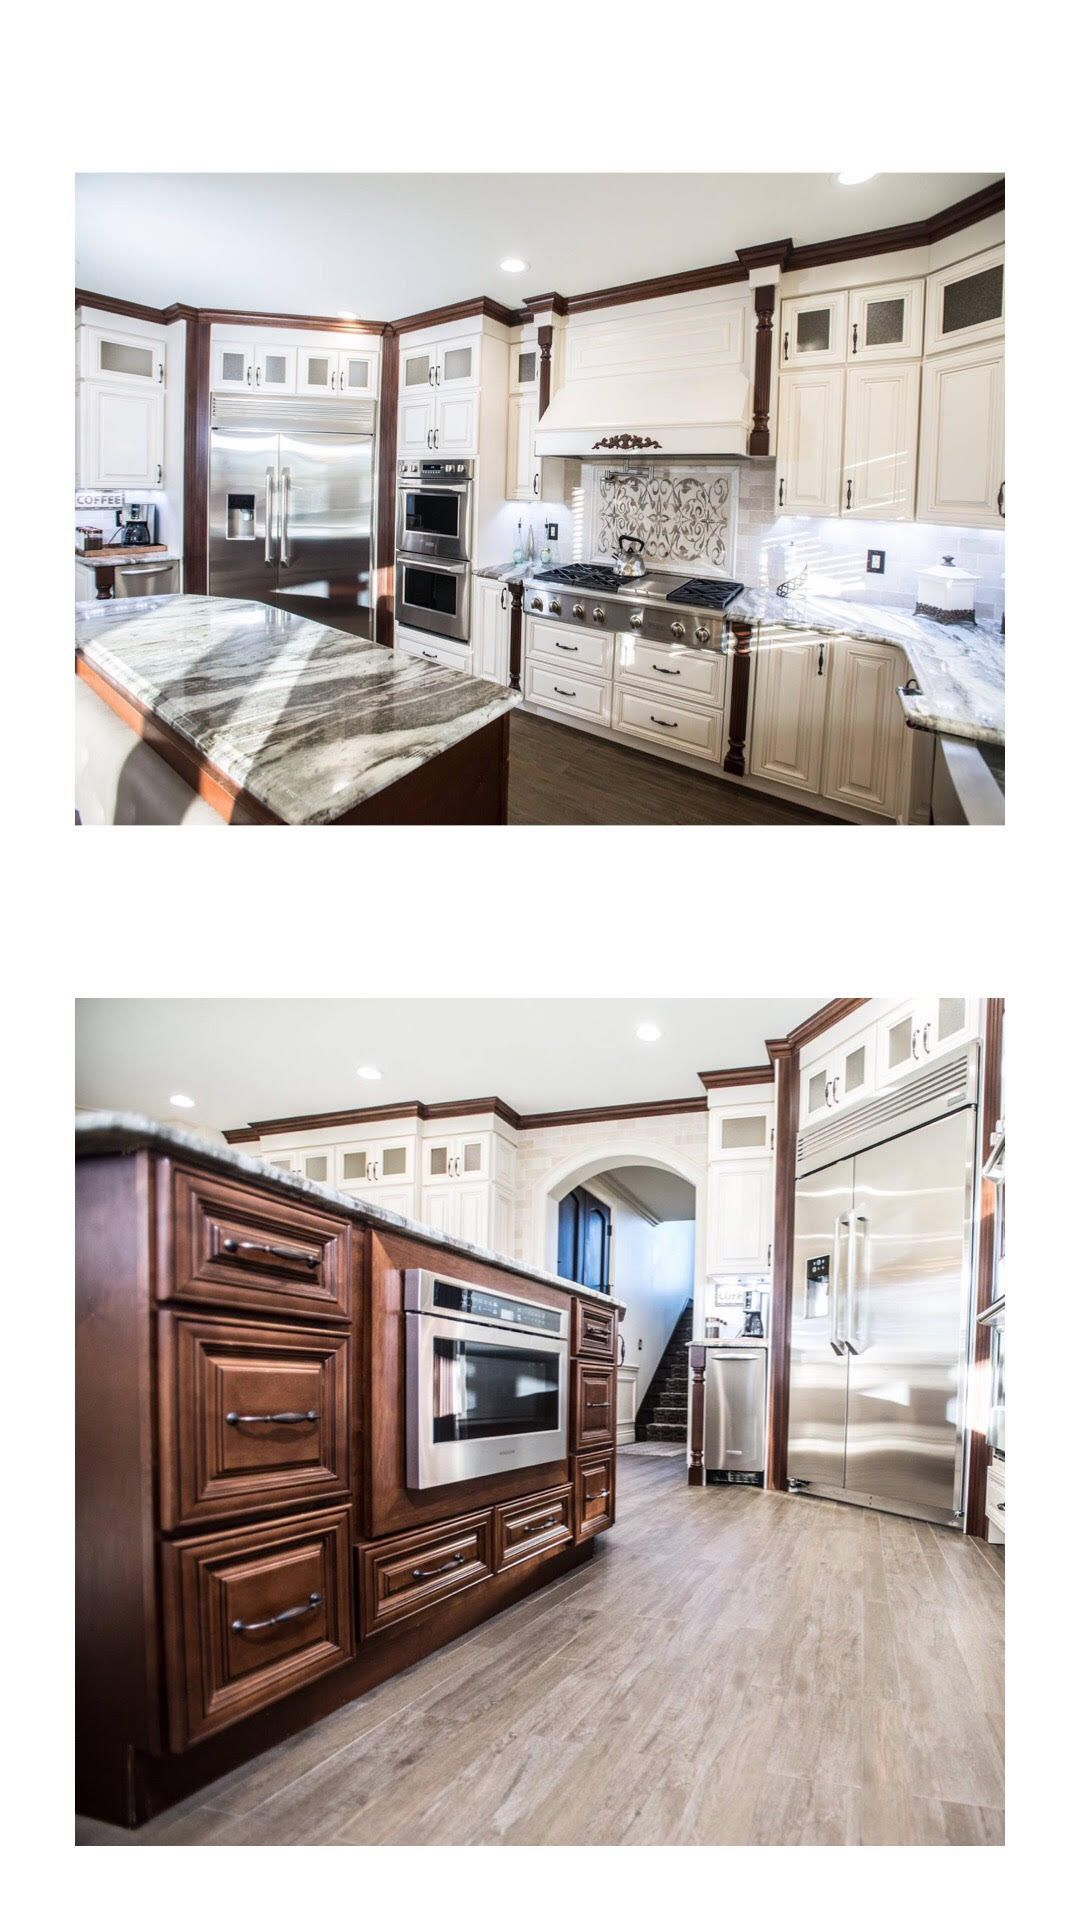 Wood Antiquecabinets By Lily Ann Cabinets Ready To Assemble Affordable Beautiful Perfect For D Cheap Kitchen Cabinets Kitchen Design Open Kitchen Design